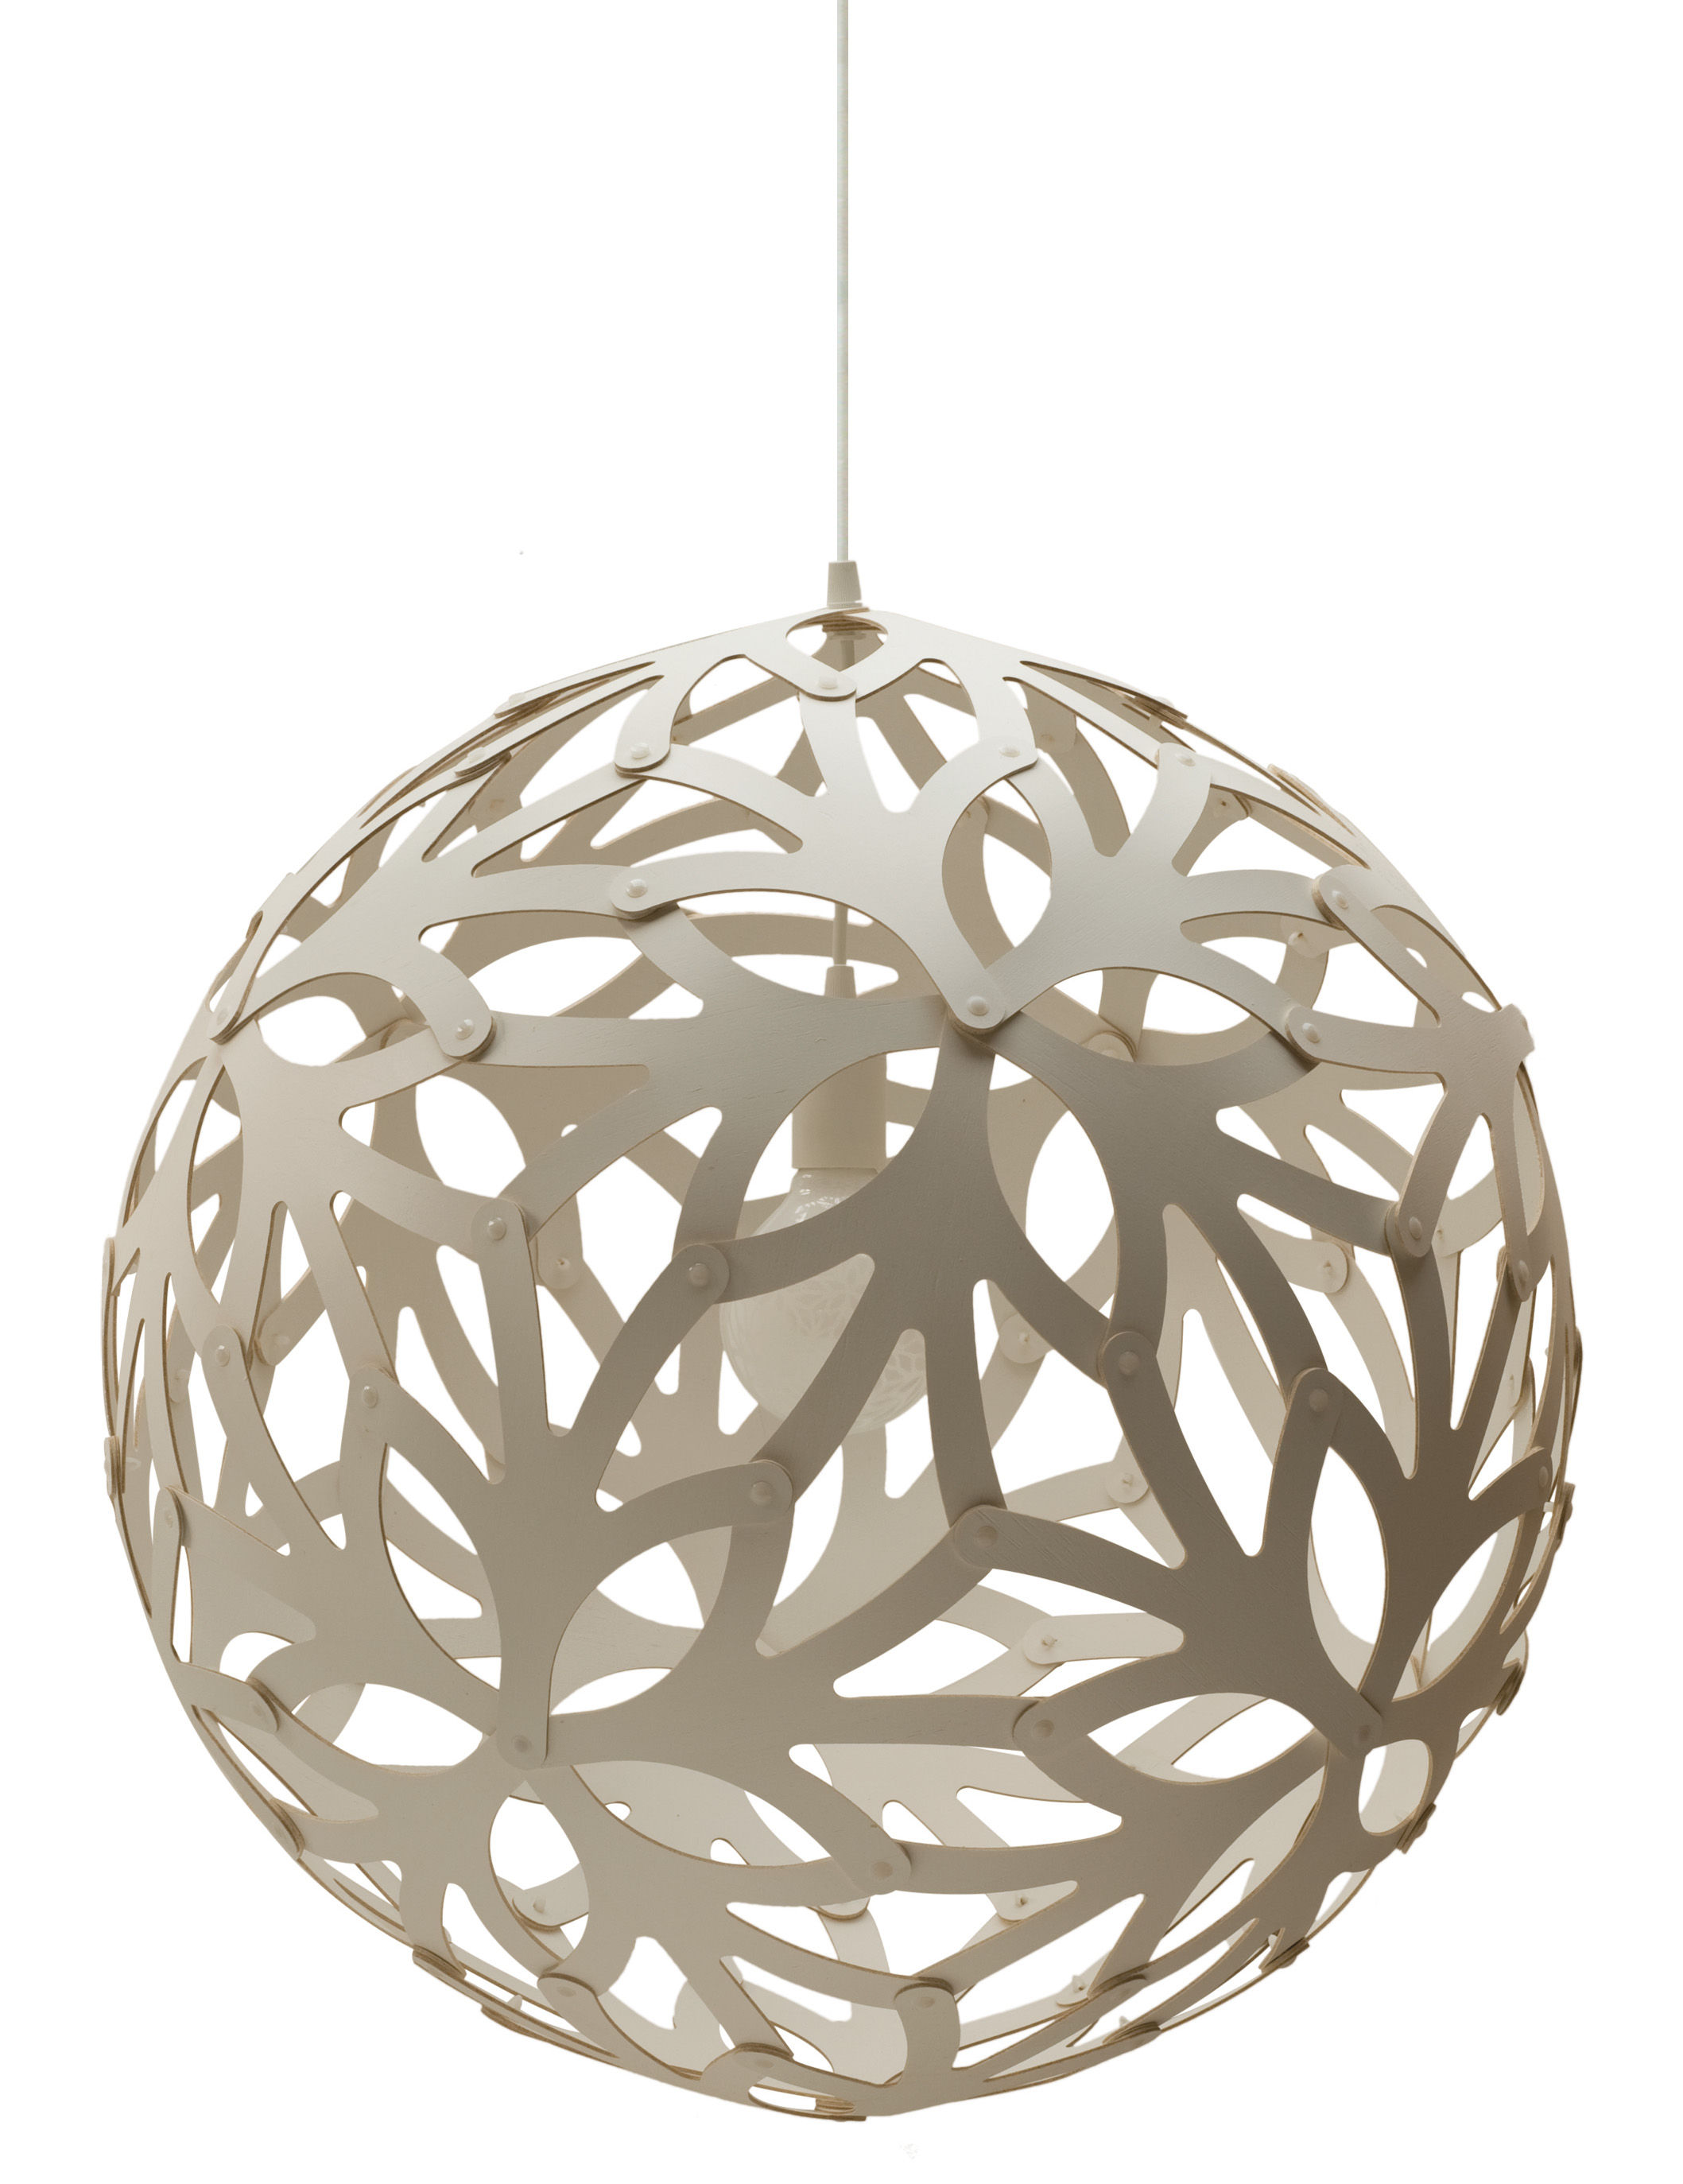 Lighting - Pendant Lighting - Floral Pendant - Ø 60 cm by David Trubridge - White - Pine